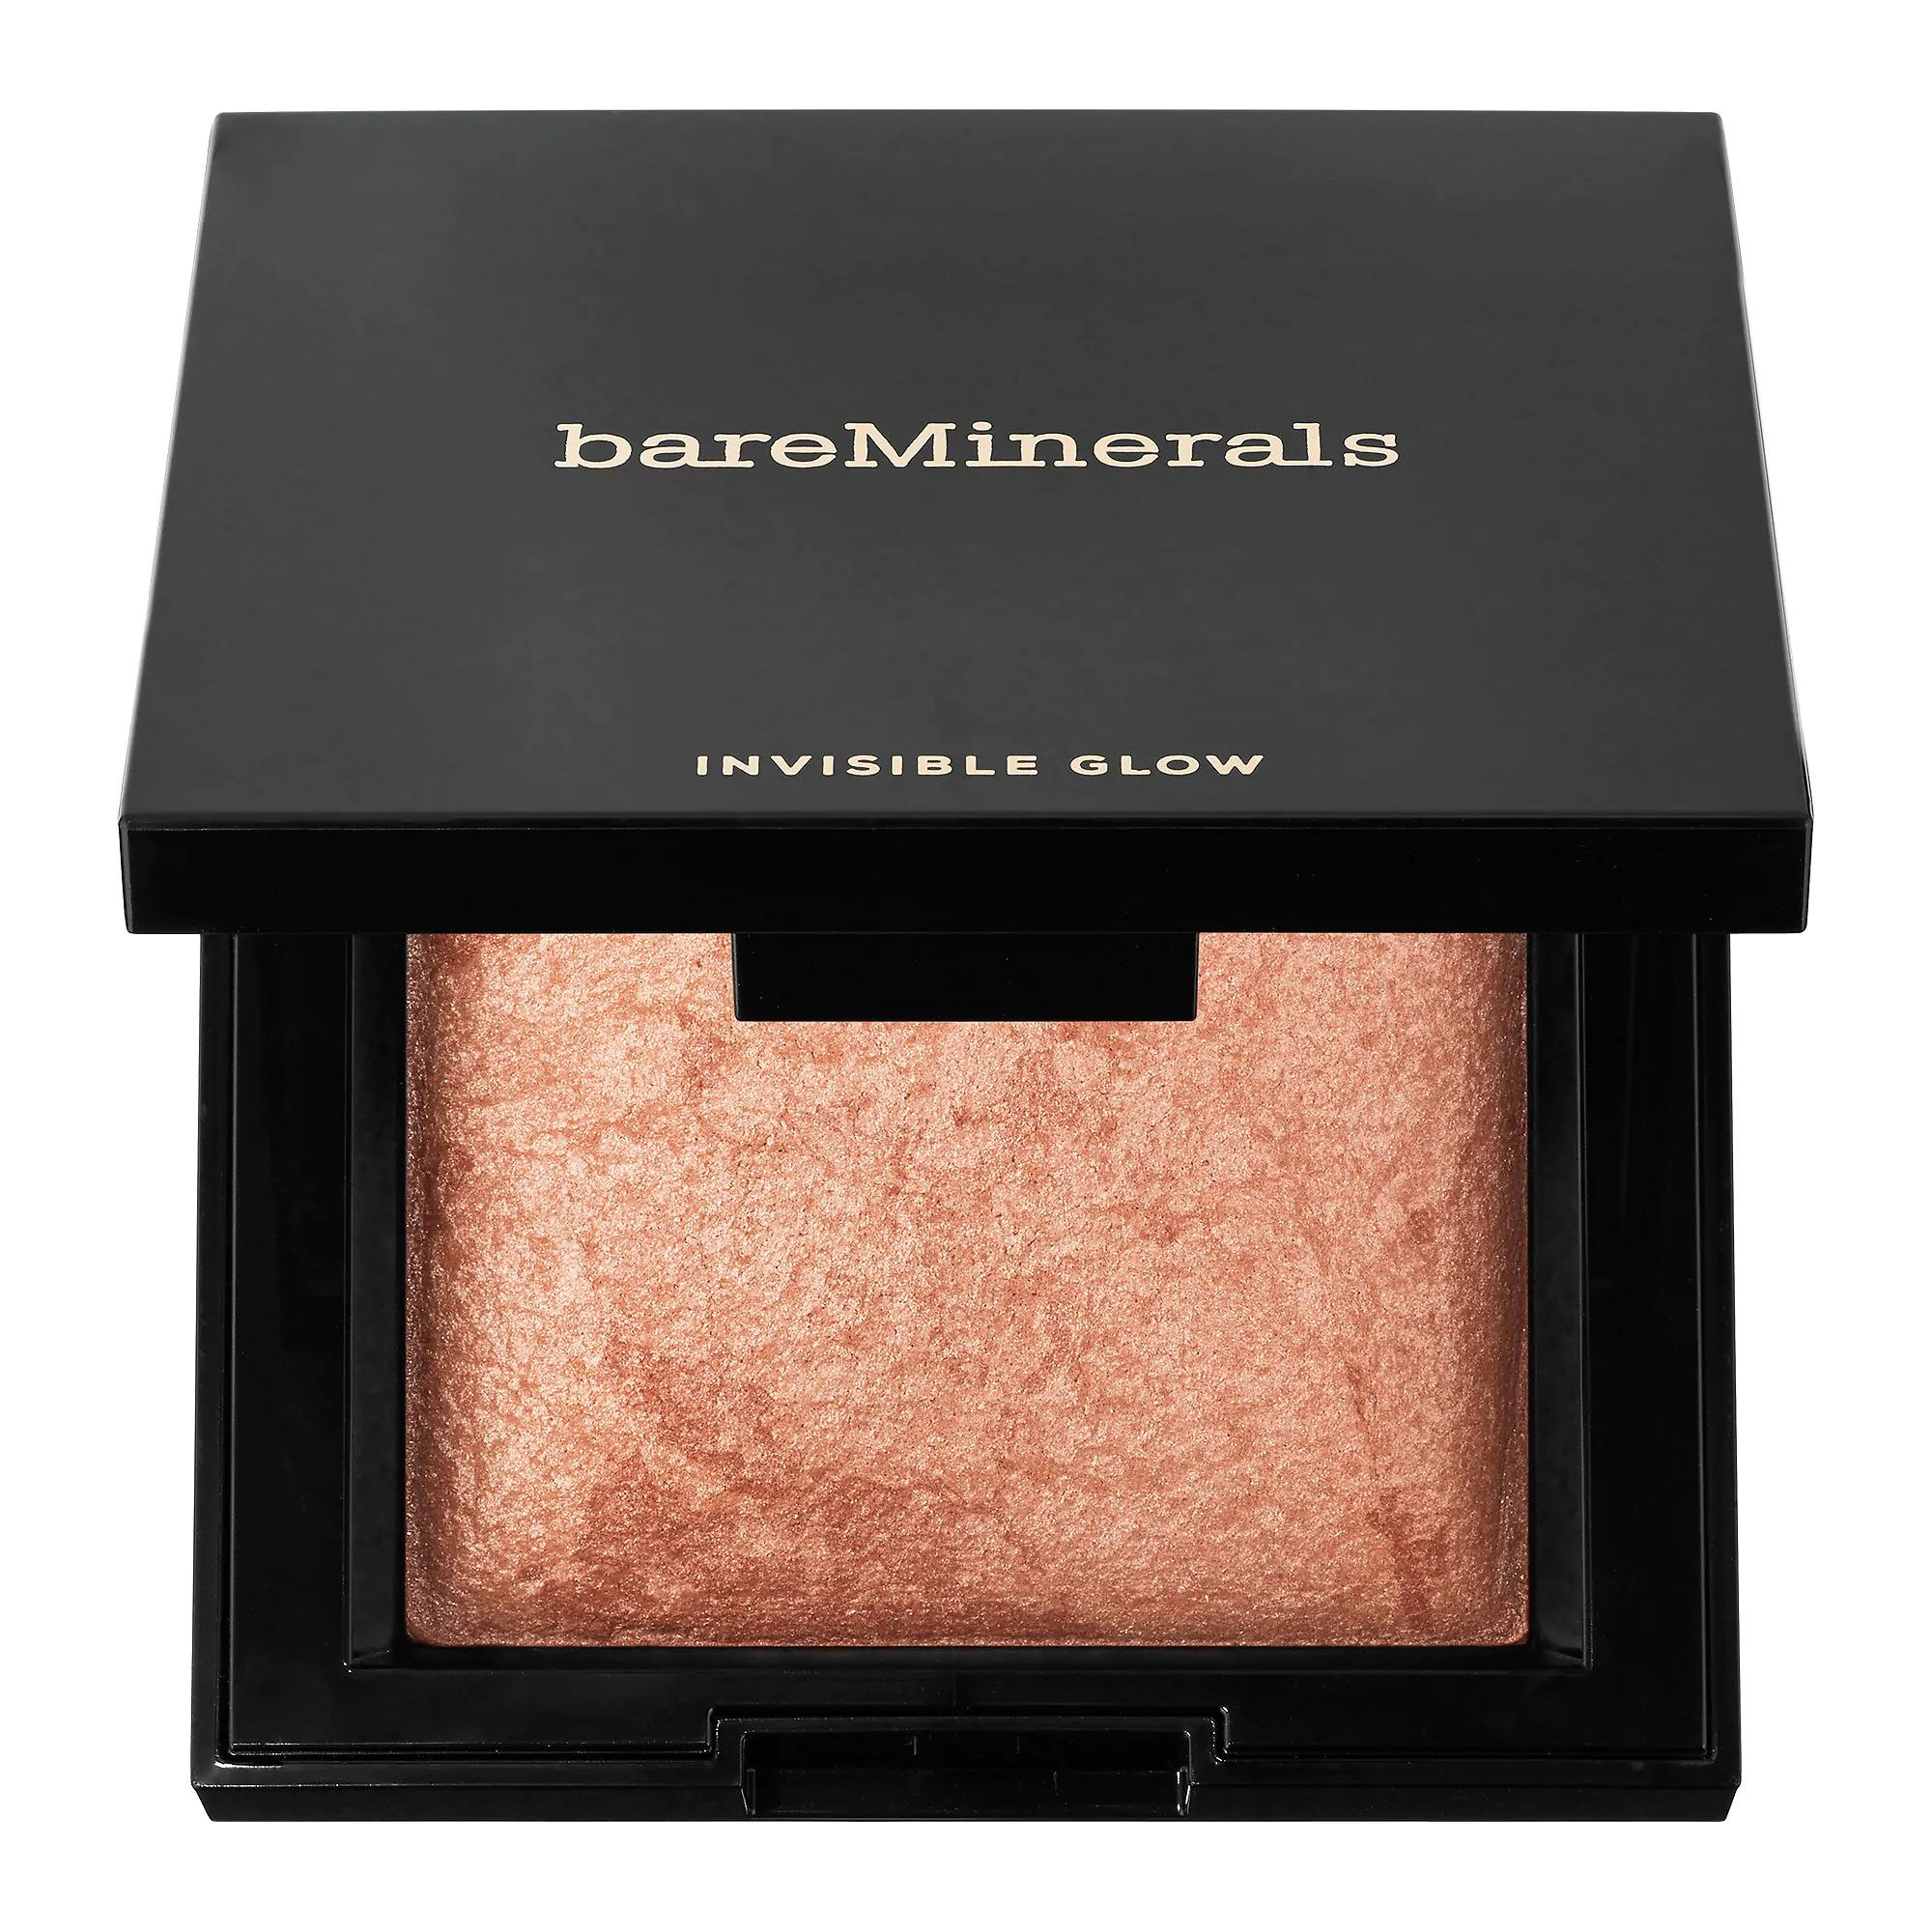 bareMinerals Invisible Glow Powder Highlighter Tan